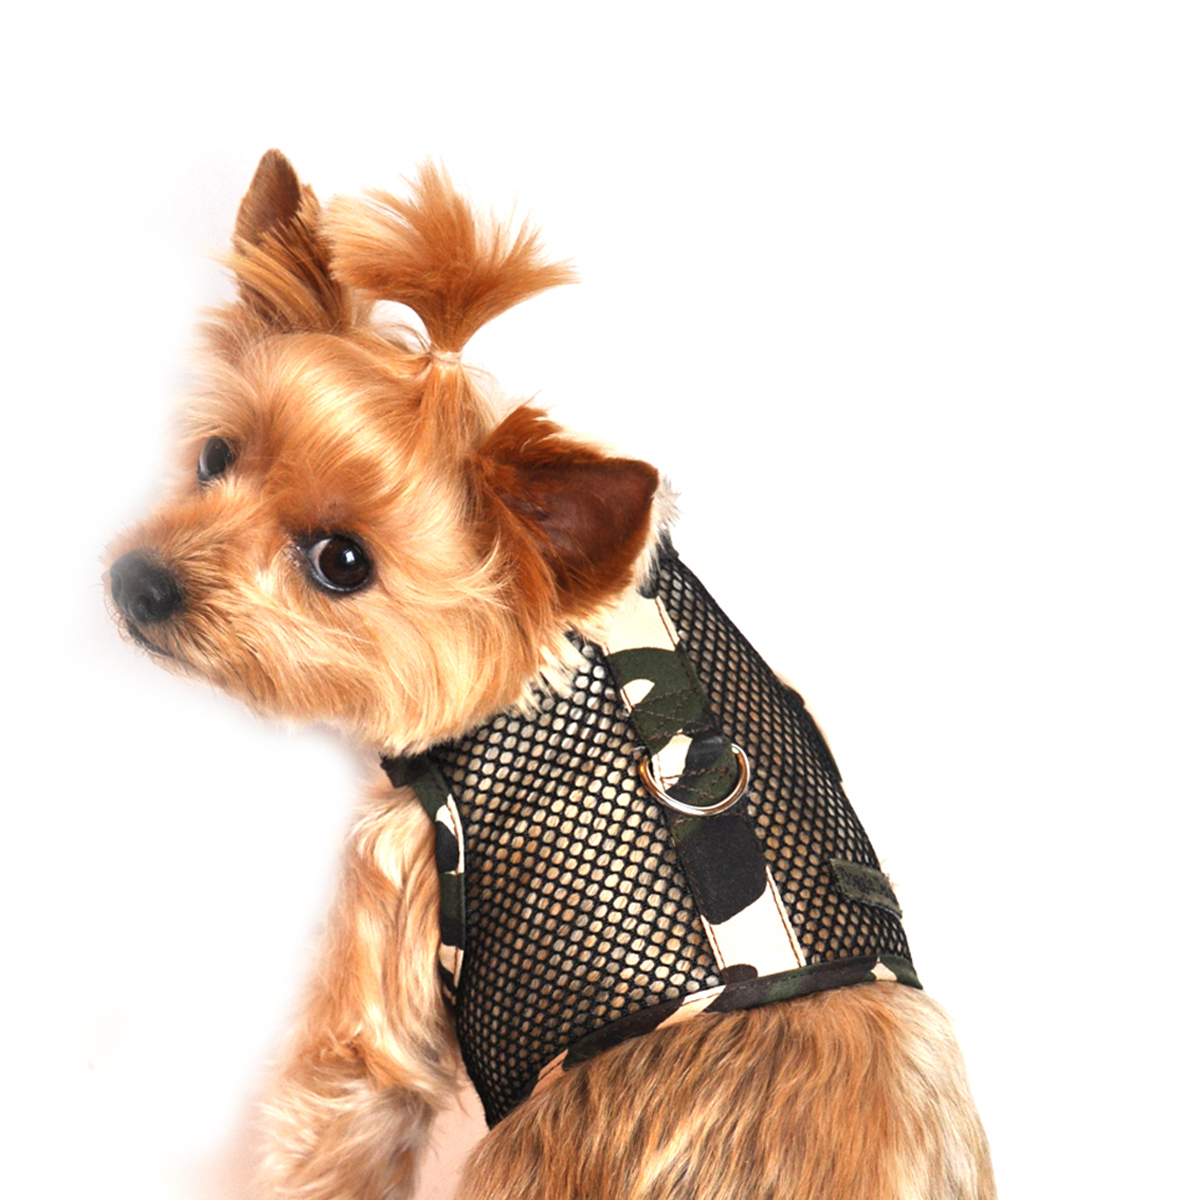 Camouflage Mesh Dog Harness by Doggie Design